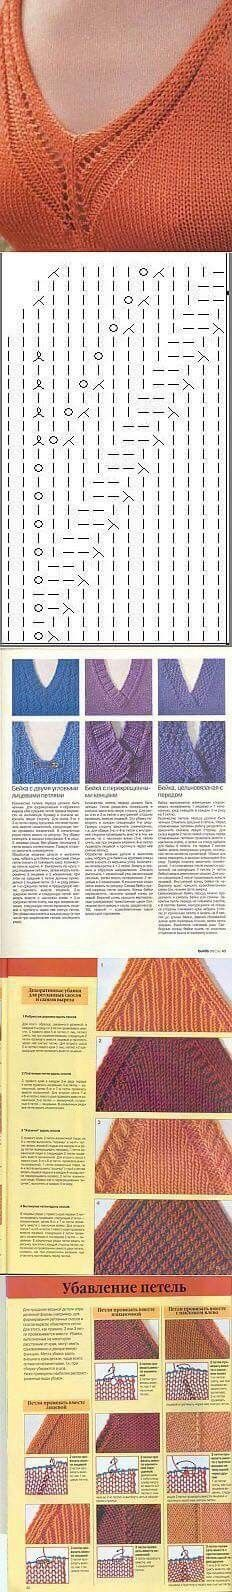 Funky neckline - Inspiration (Russian)